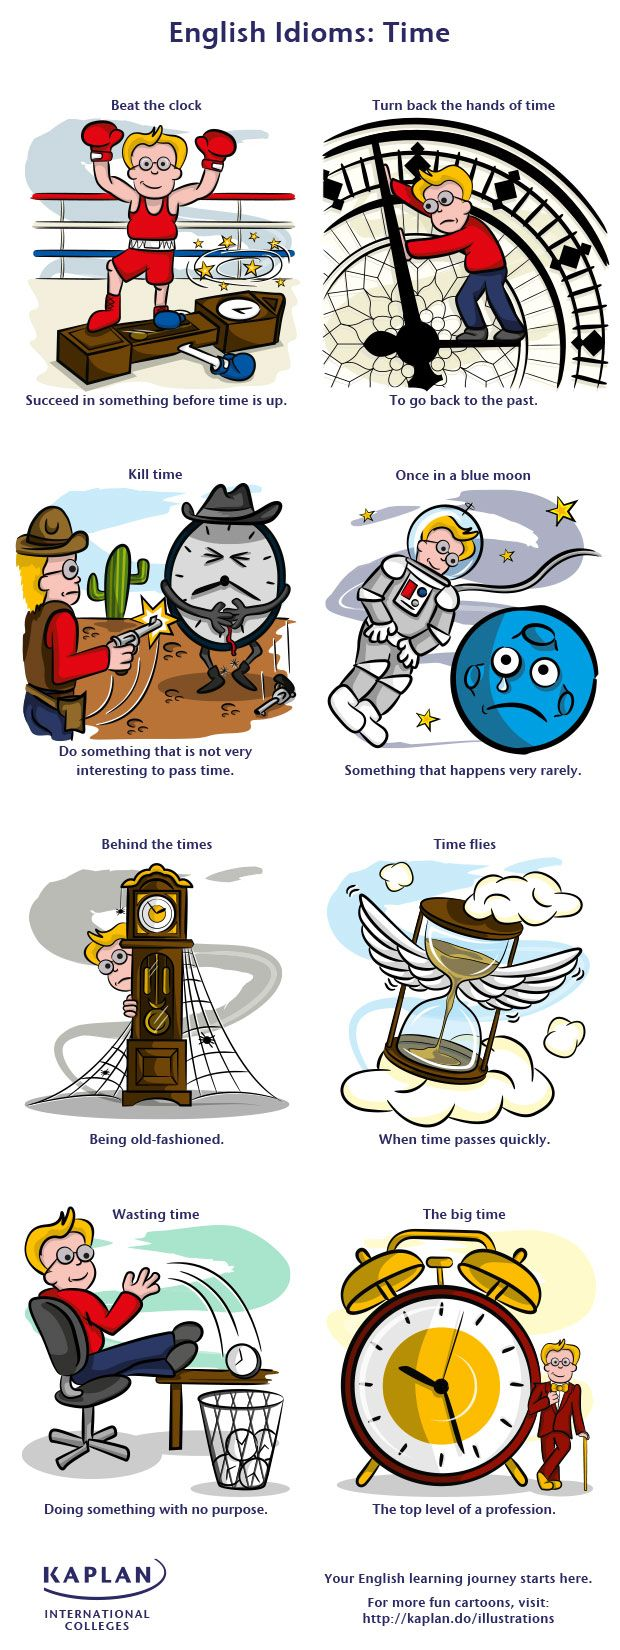 Quick English Idioms: Time - Kaplan International Colleges Blog